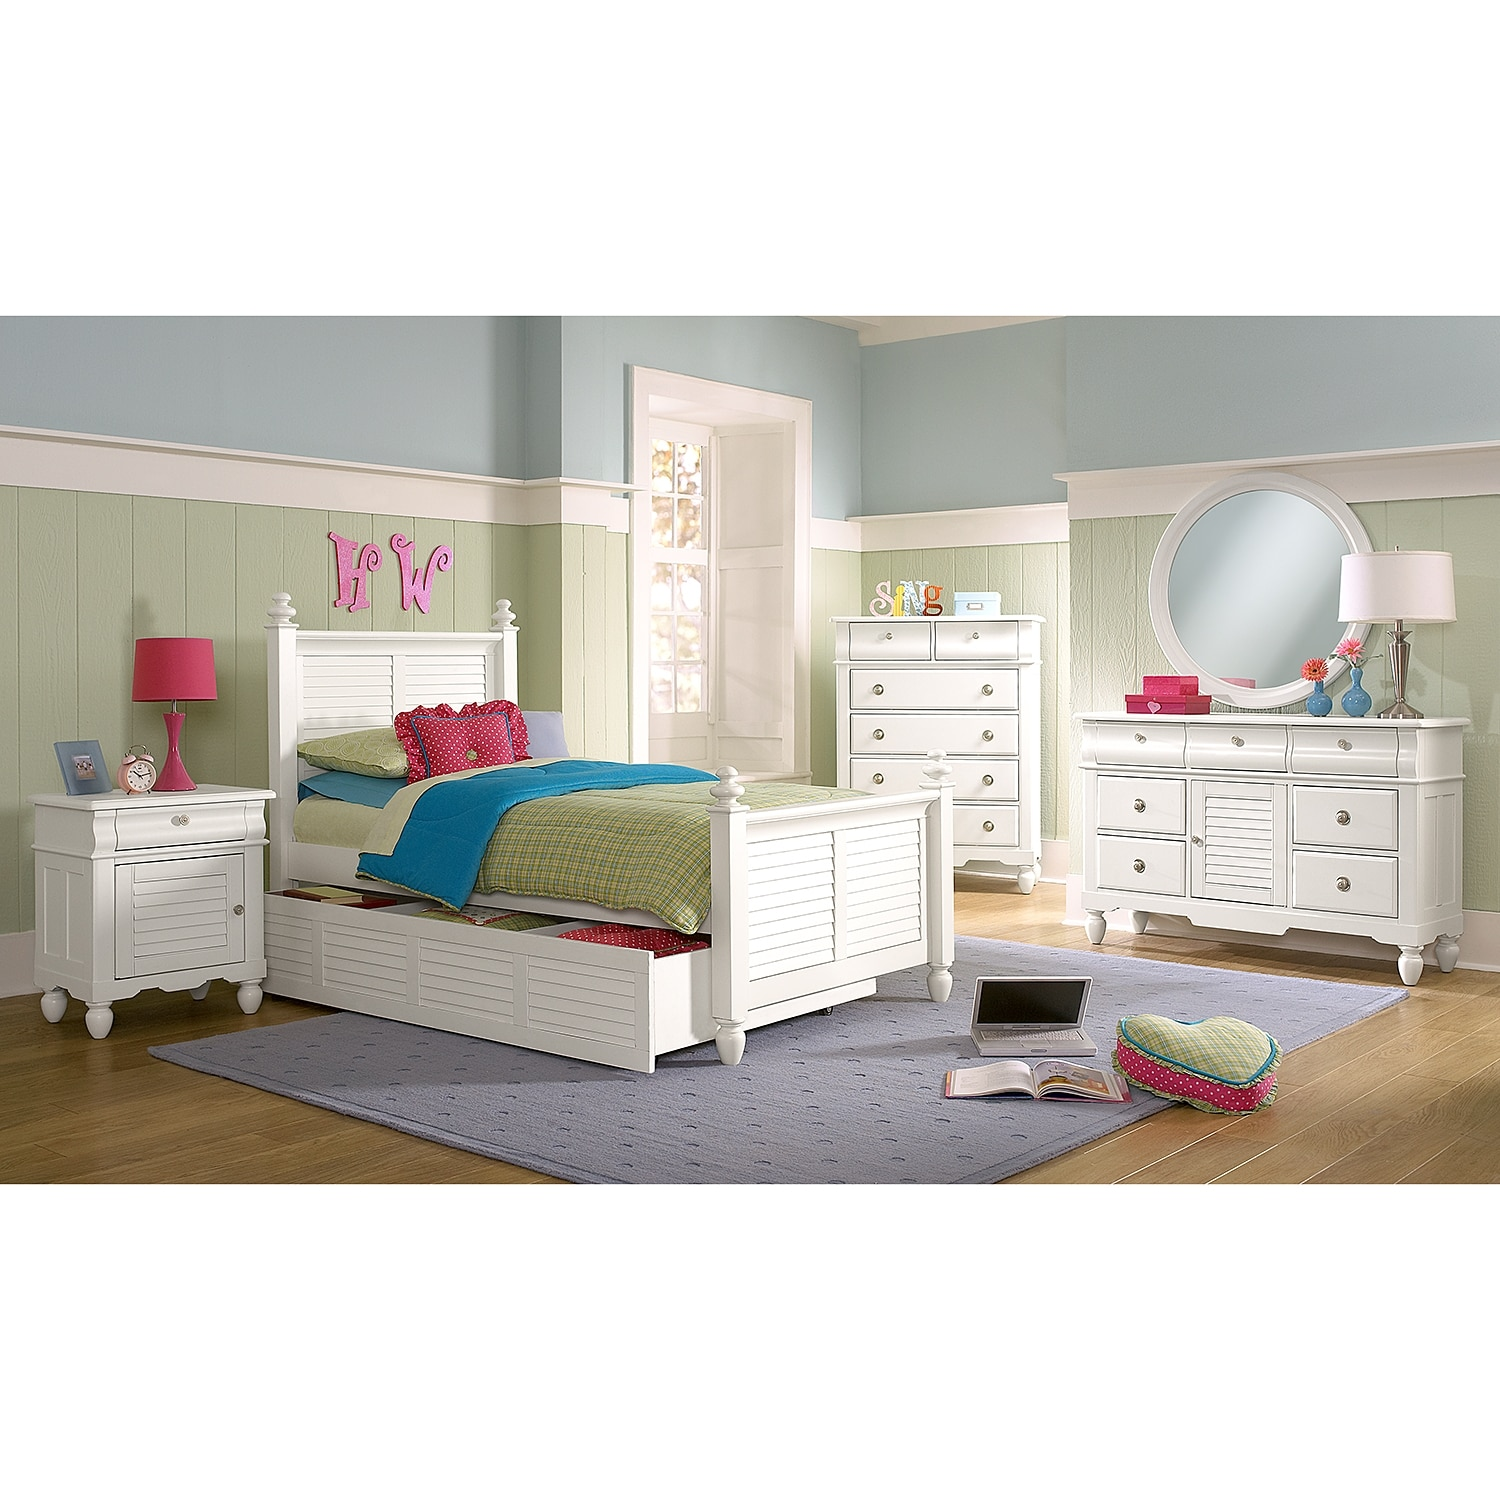 Seaside white twin bed with trundle value city furniture Seaside collection furniture